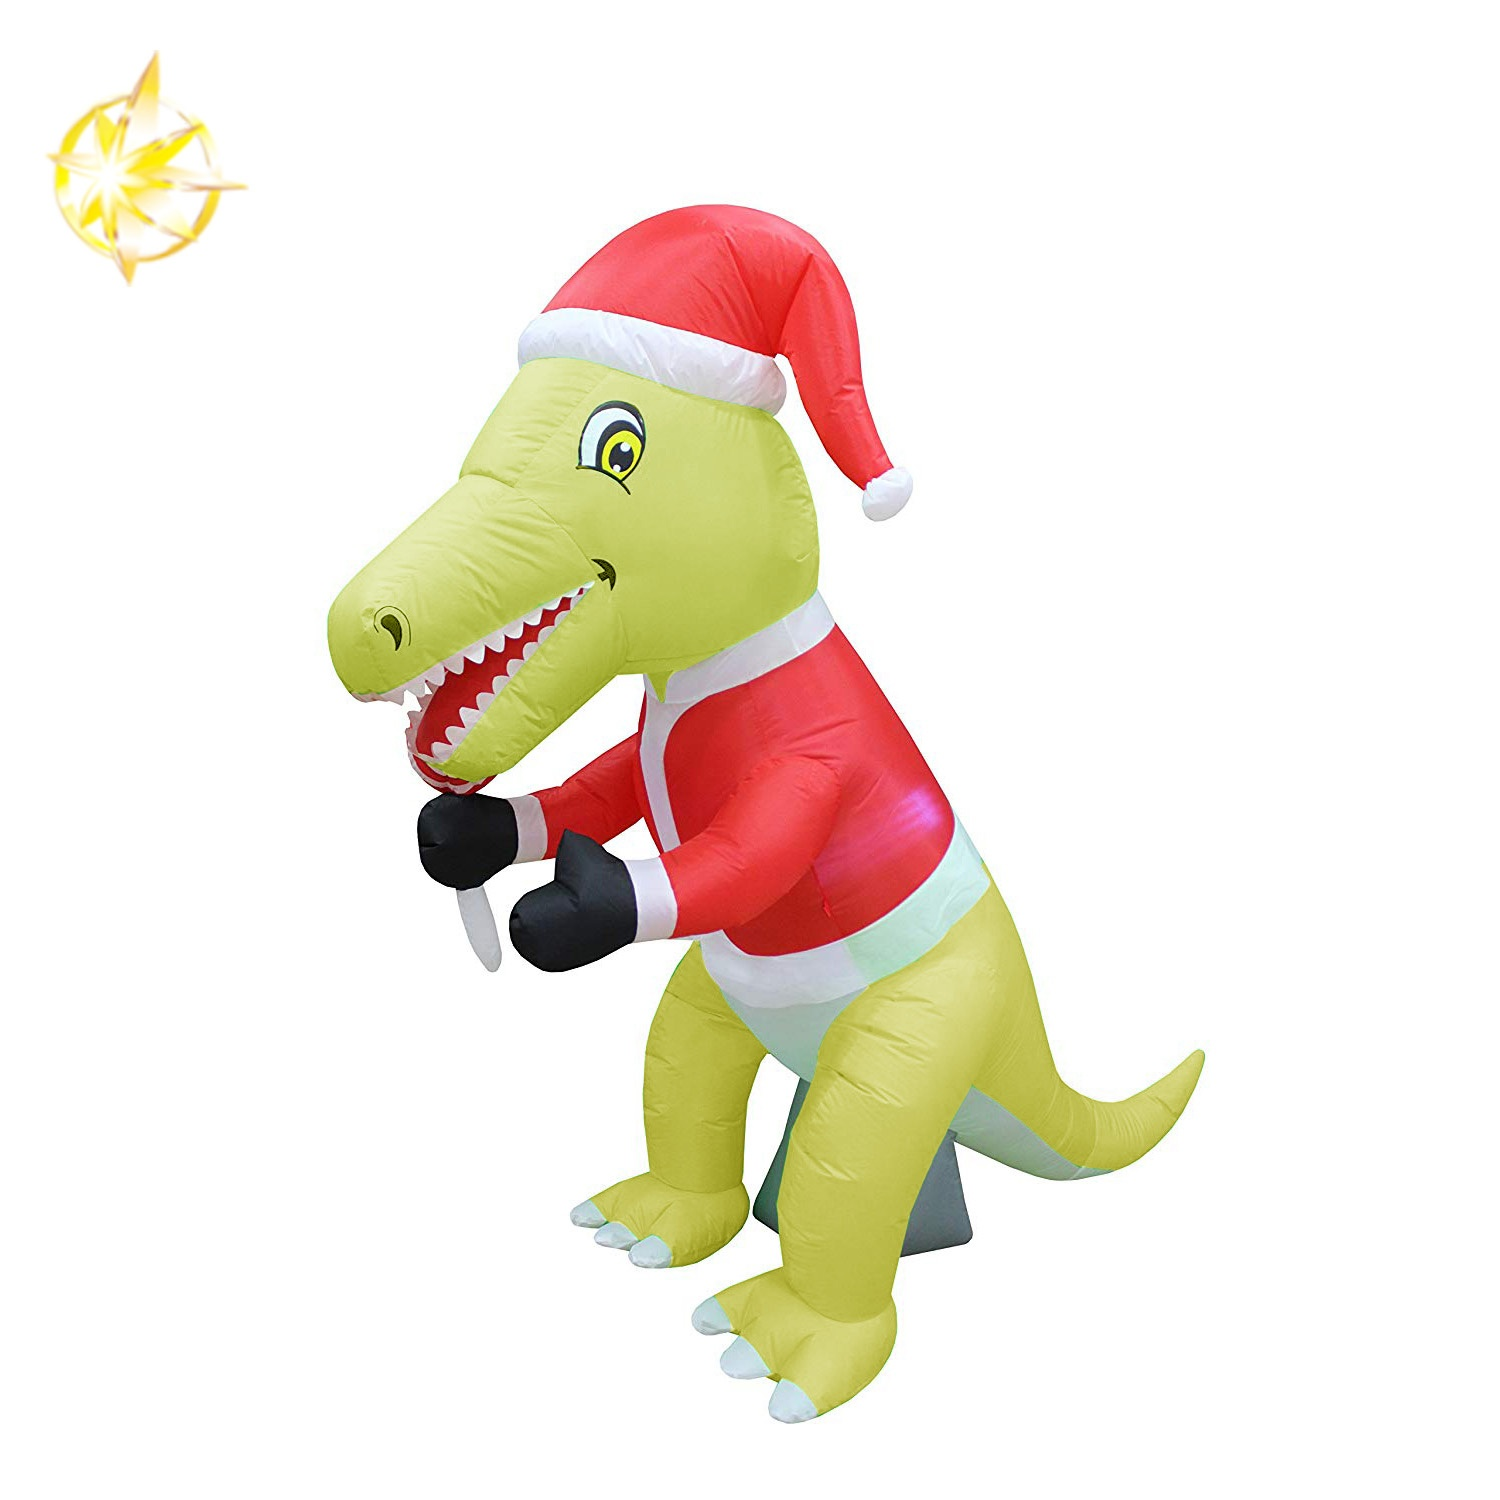 6 foot Christmas inflatable yellow dinosaur LED light decor outdoor indoor decoration